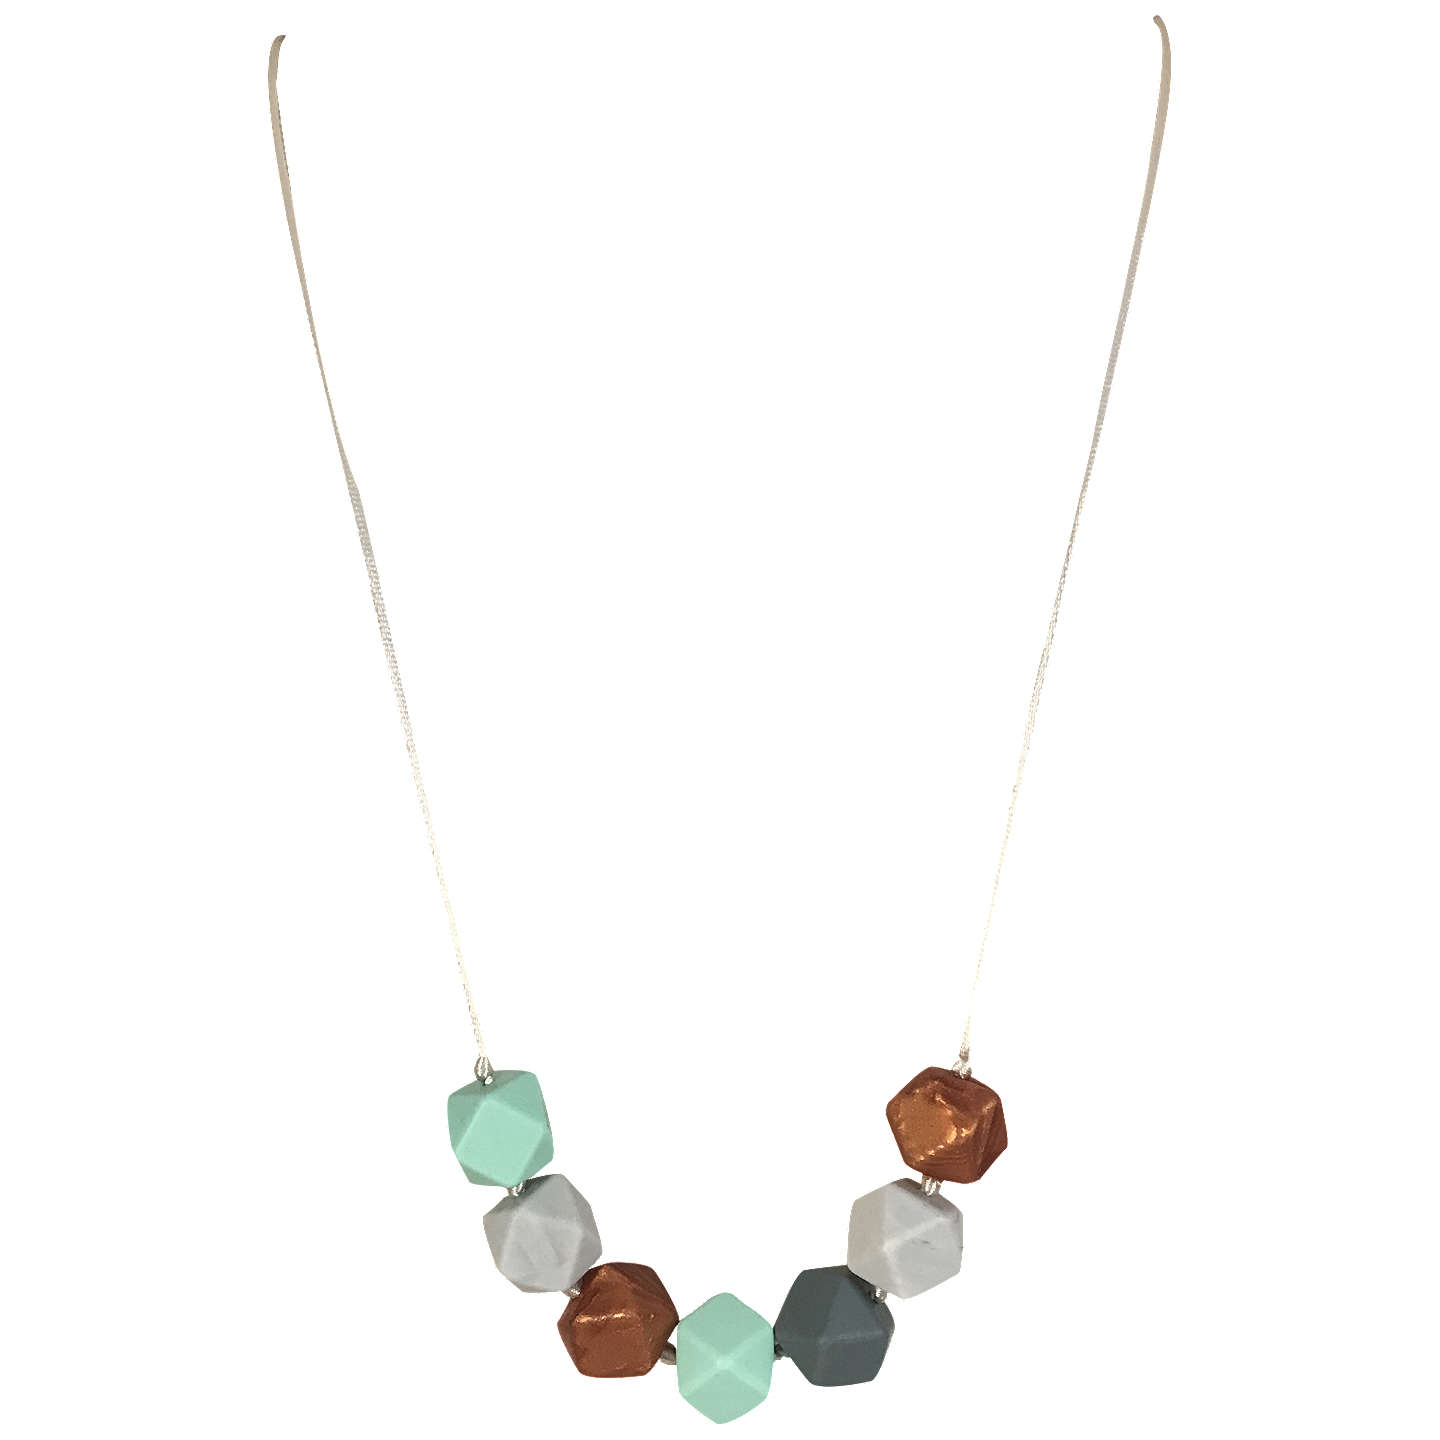 Mama belle aurora quartz teething necklace at john lewis buymama belle aurora quartz teething necklace mint online at johnlewis aloadofball Choice Image